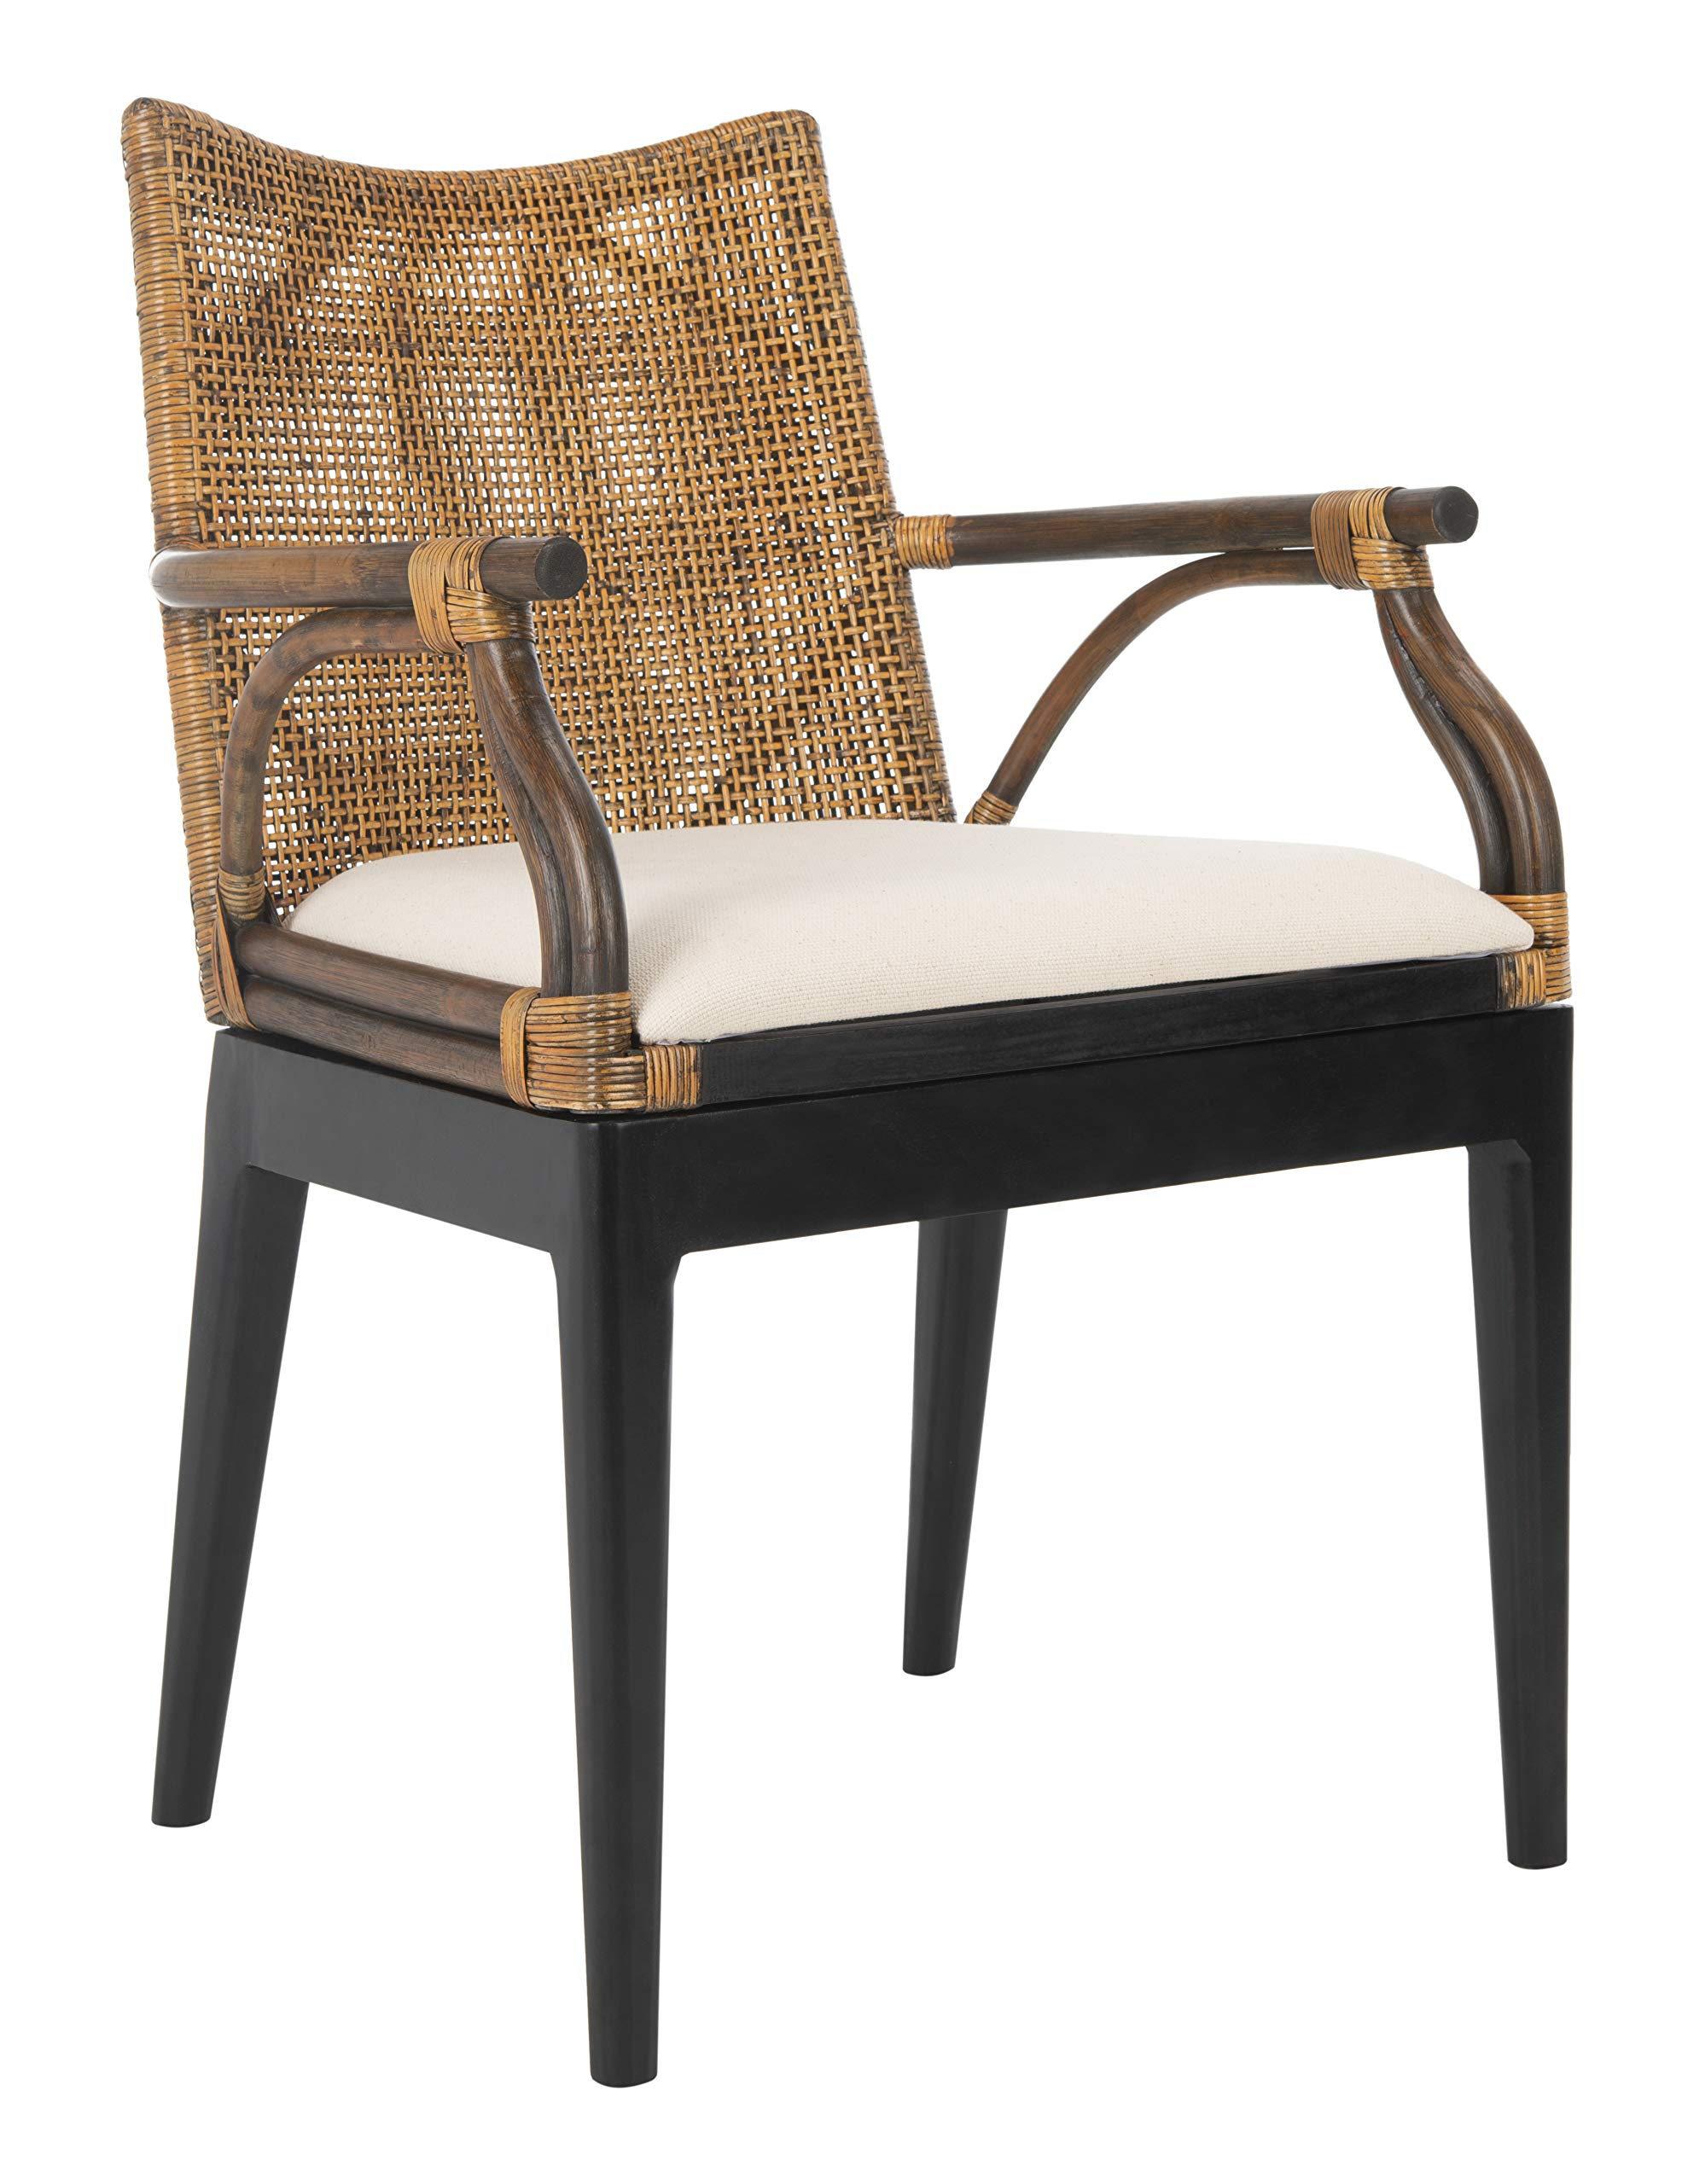 Safavieh Home Gianni Brown Rattan Tropical Woven Arm Chair